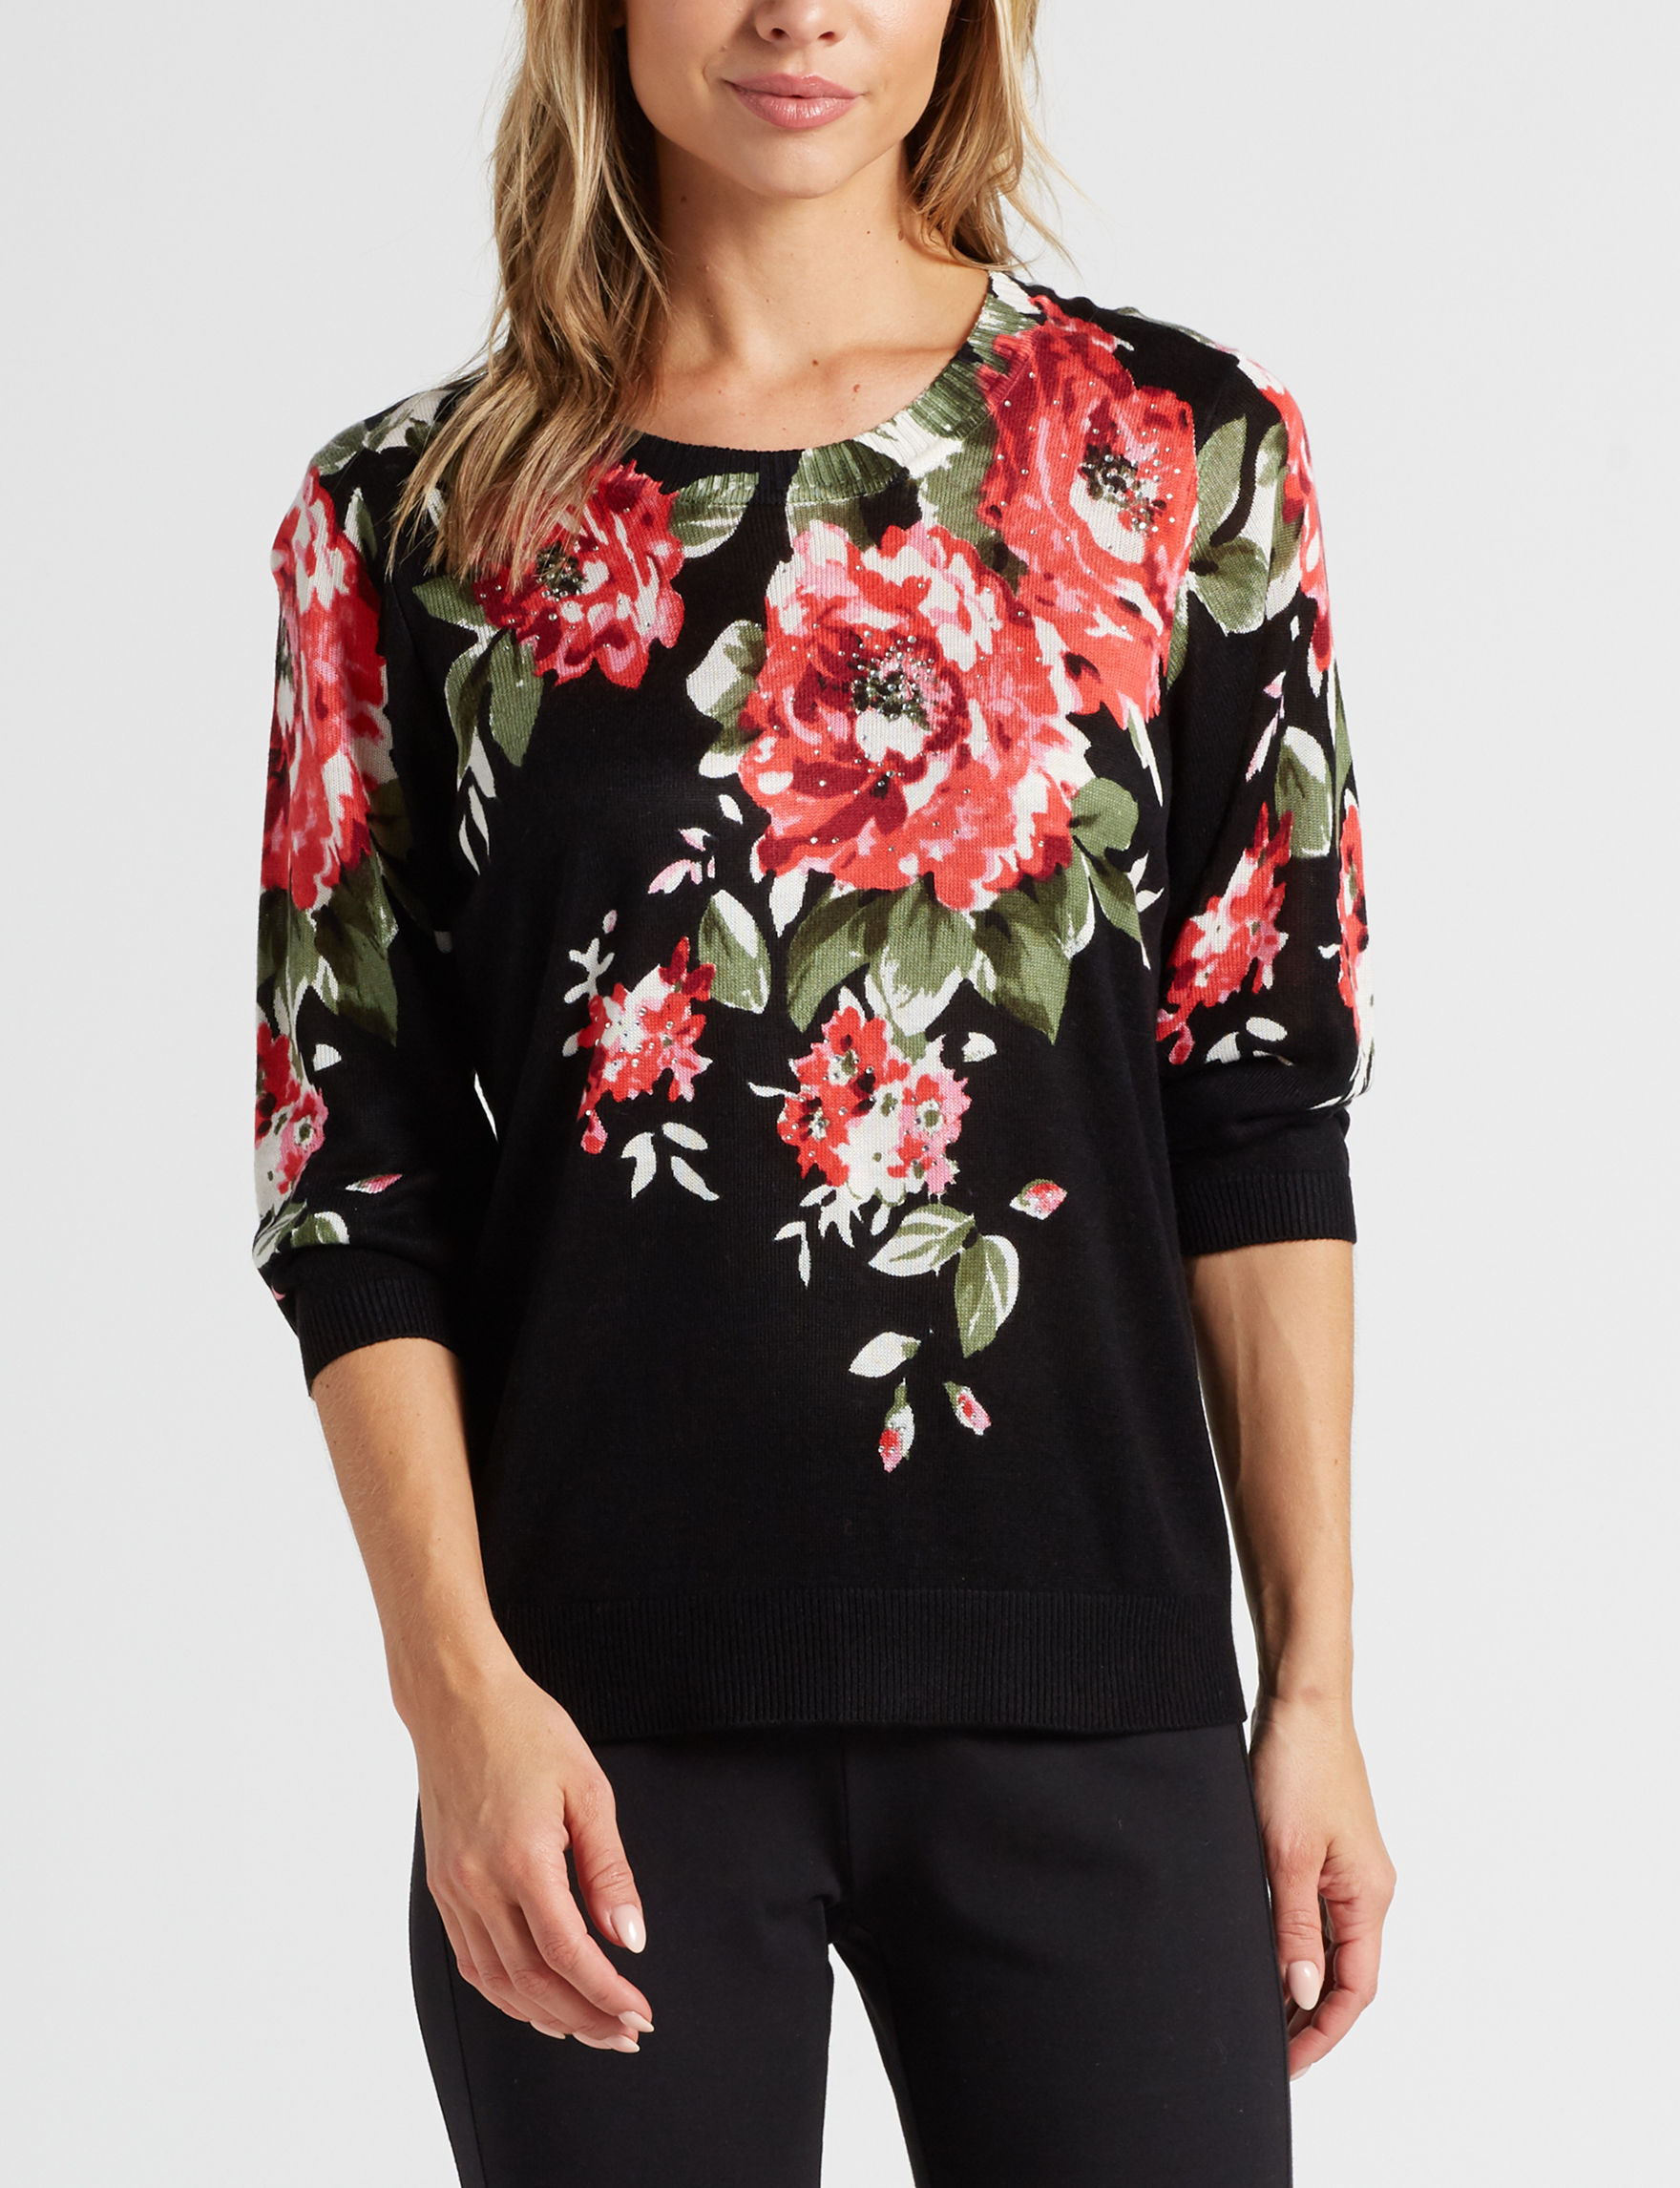 Rebecca Malone Black / Pink Pull-overs Shirts & Blouses